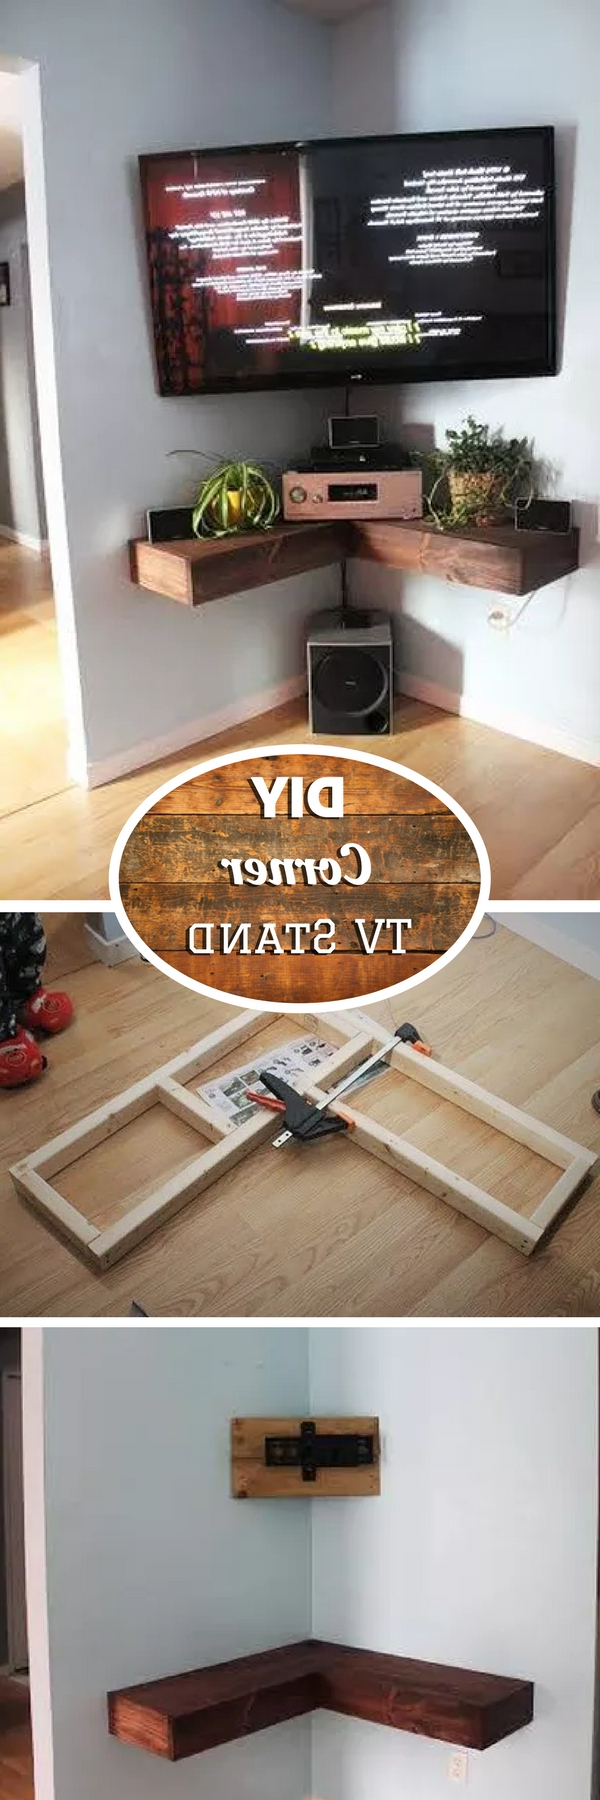 21+ Diy Tv Stand Ideas For Your Weekend Home Project Intended For Well Liked Bracketed Tv Stands (View 7 of 20)